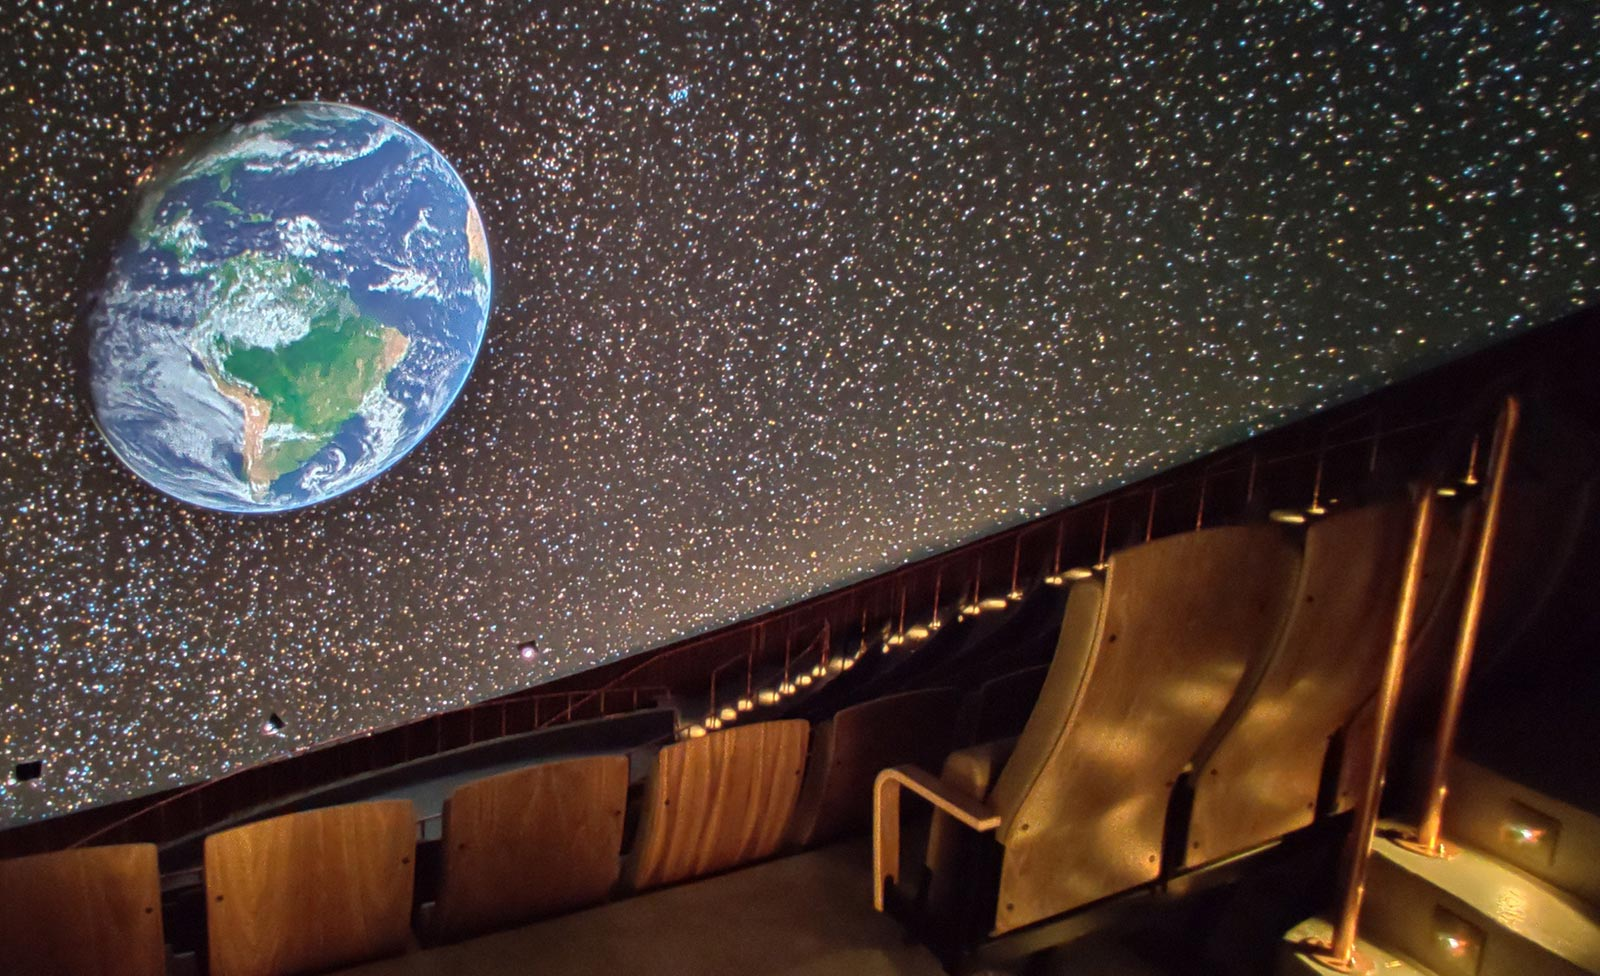 Digistar 7 imagery on the dome at Tycho Brahe Planetarium in Copenhagen, Denmark